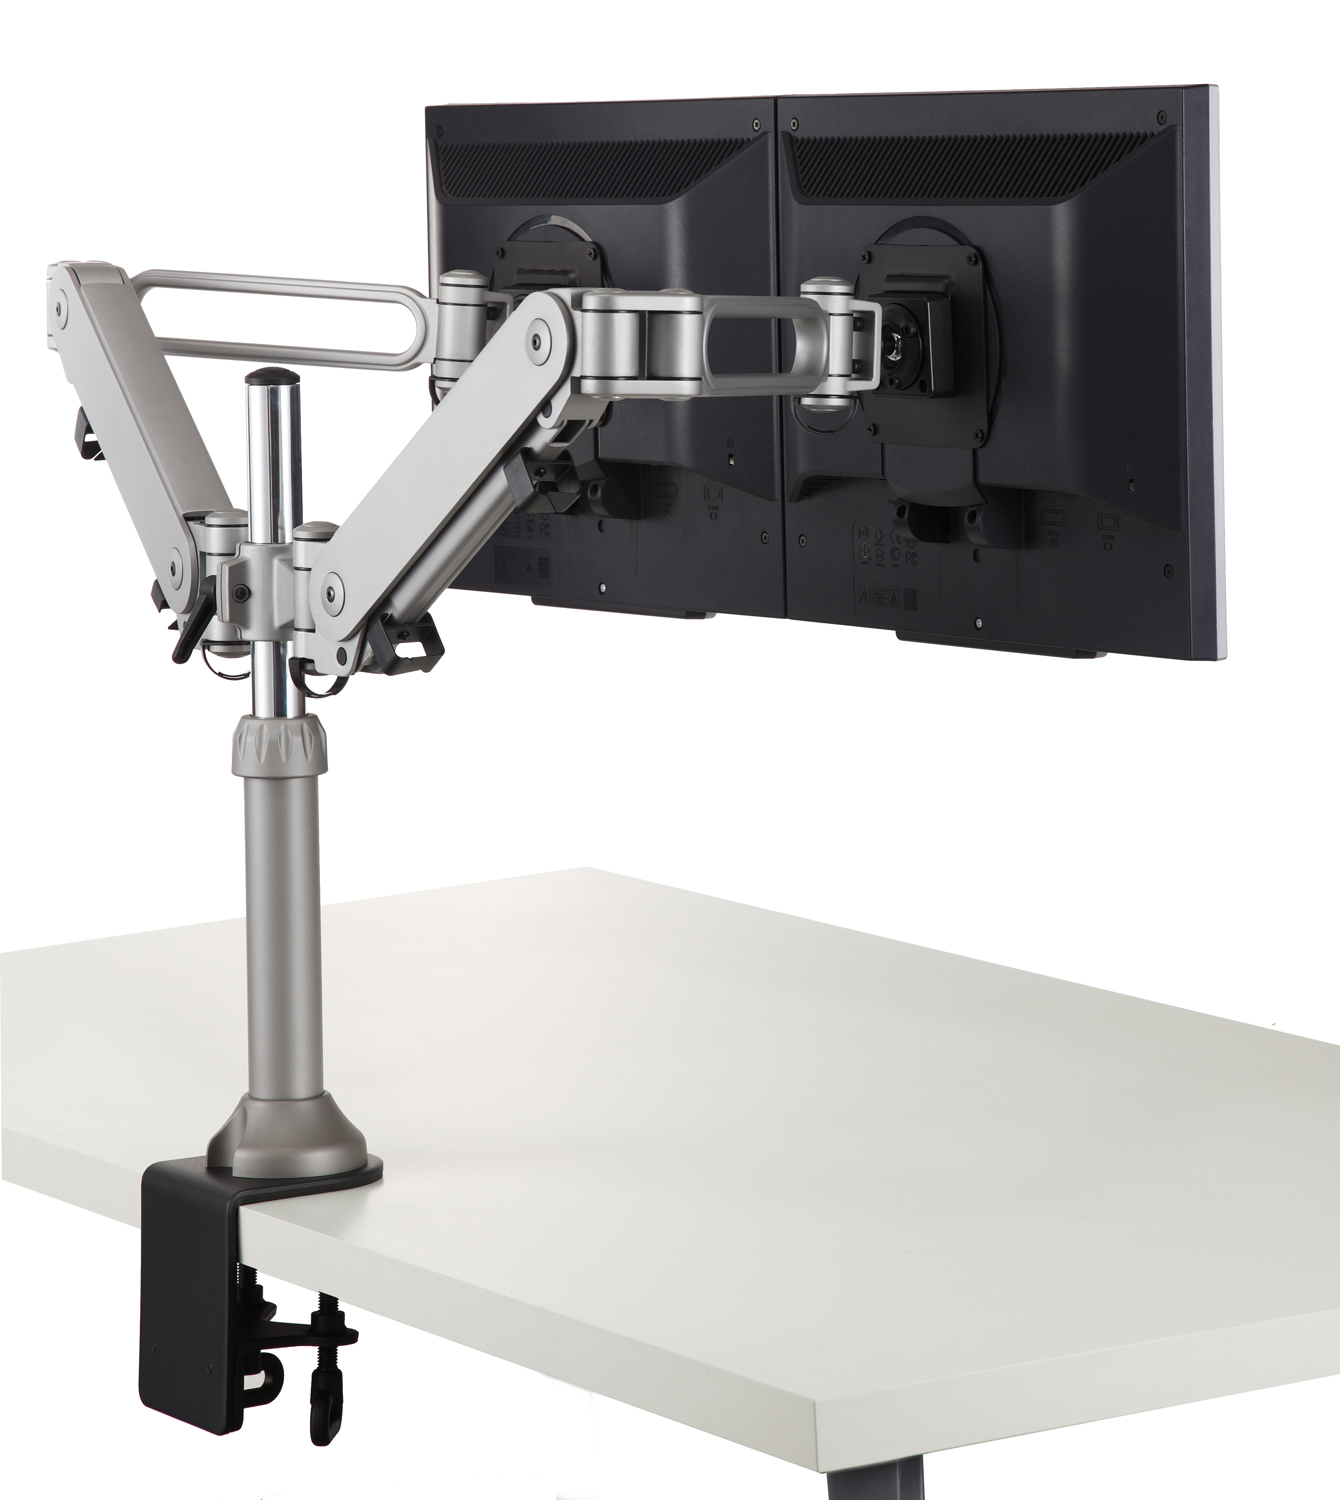 Monitor Arm Rm4 Desk Top Mount Clamp Style Dual Holder